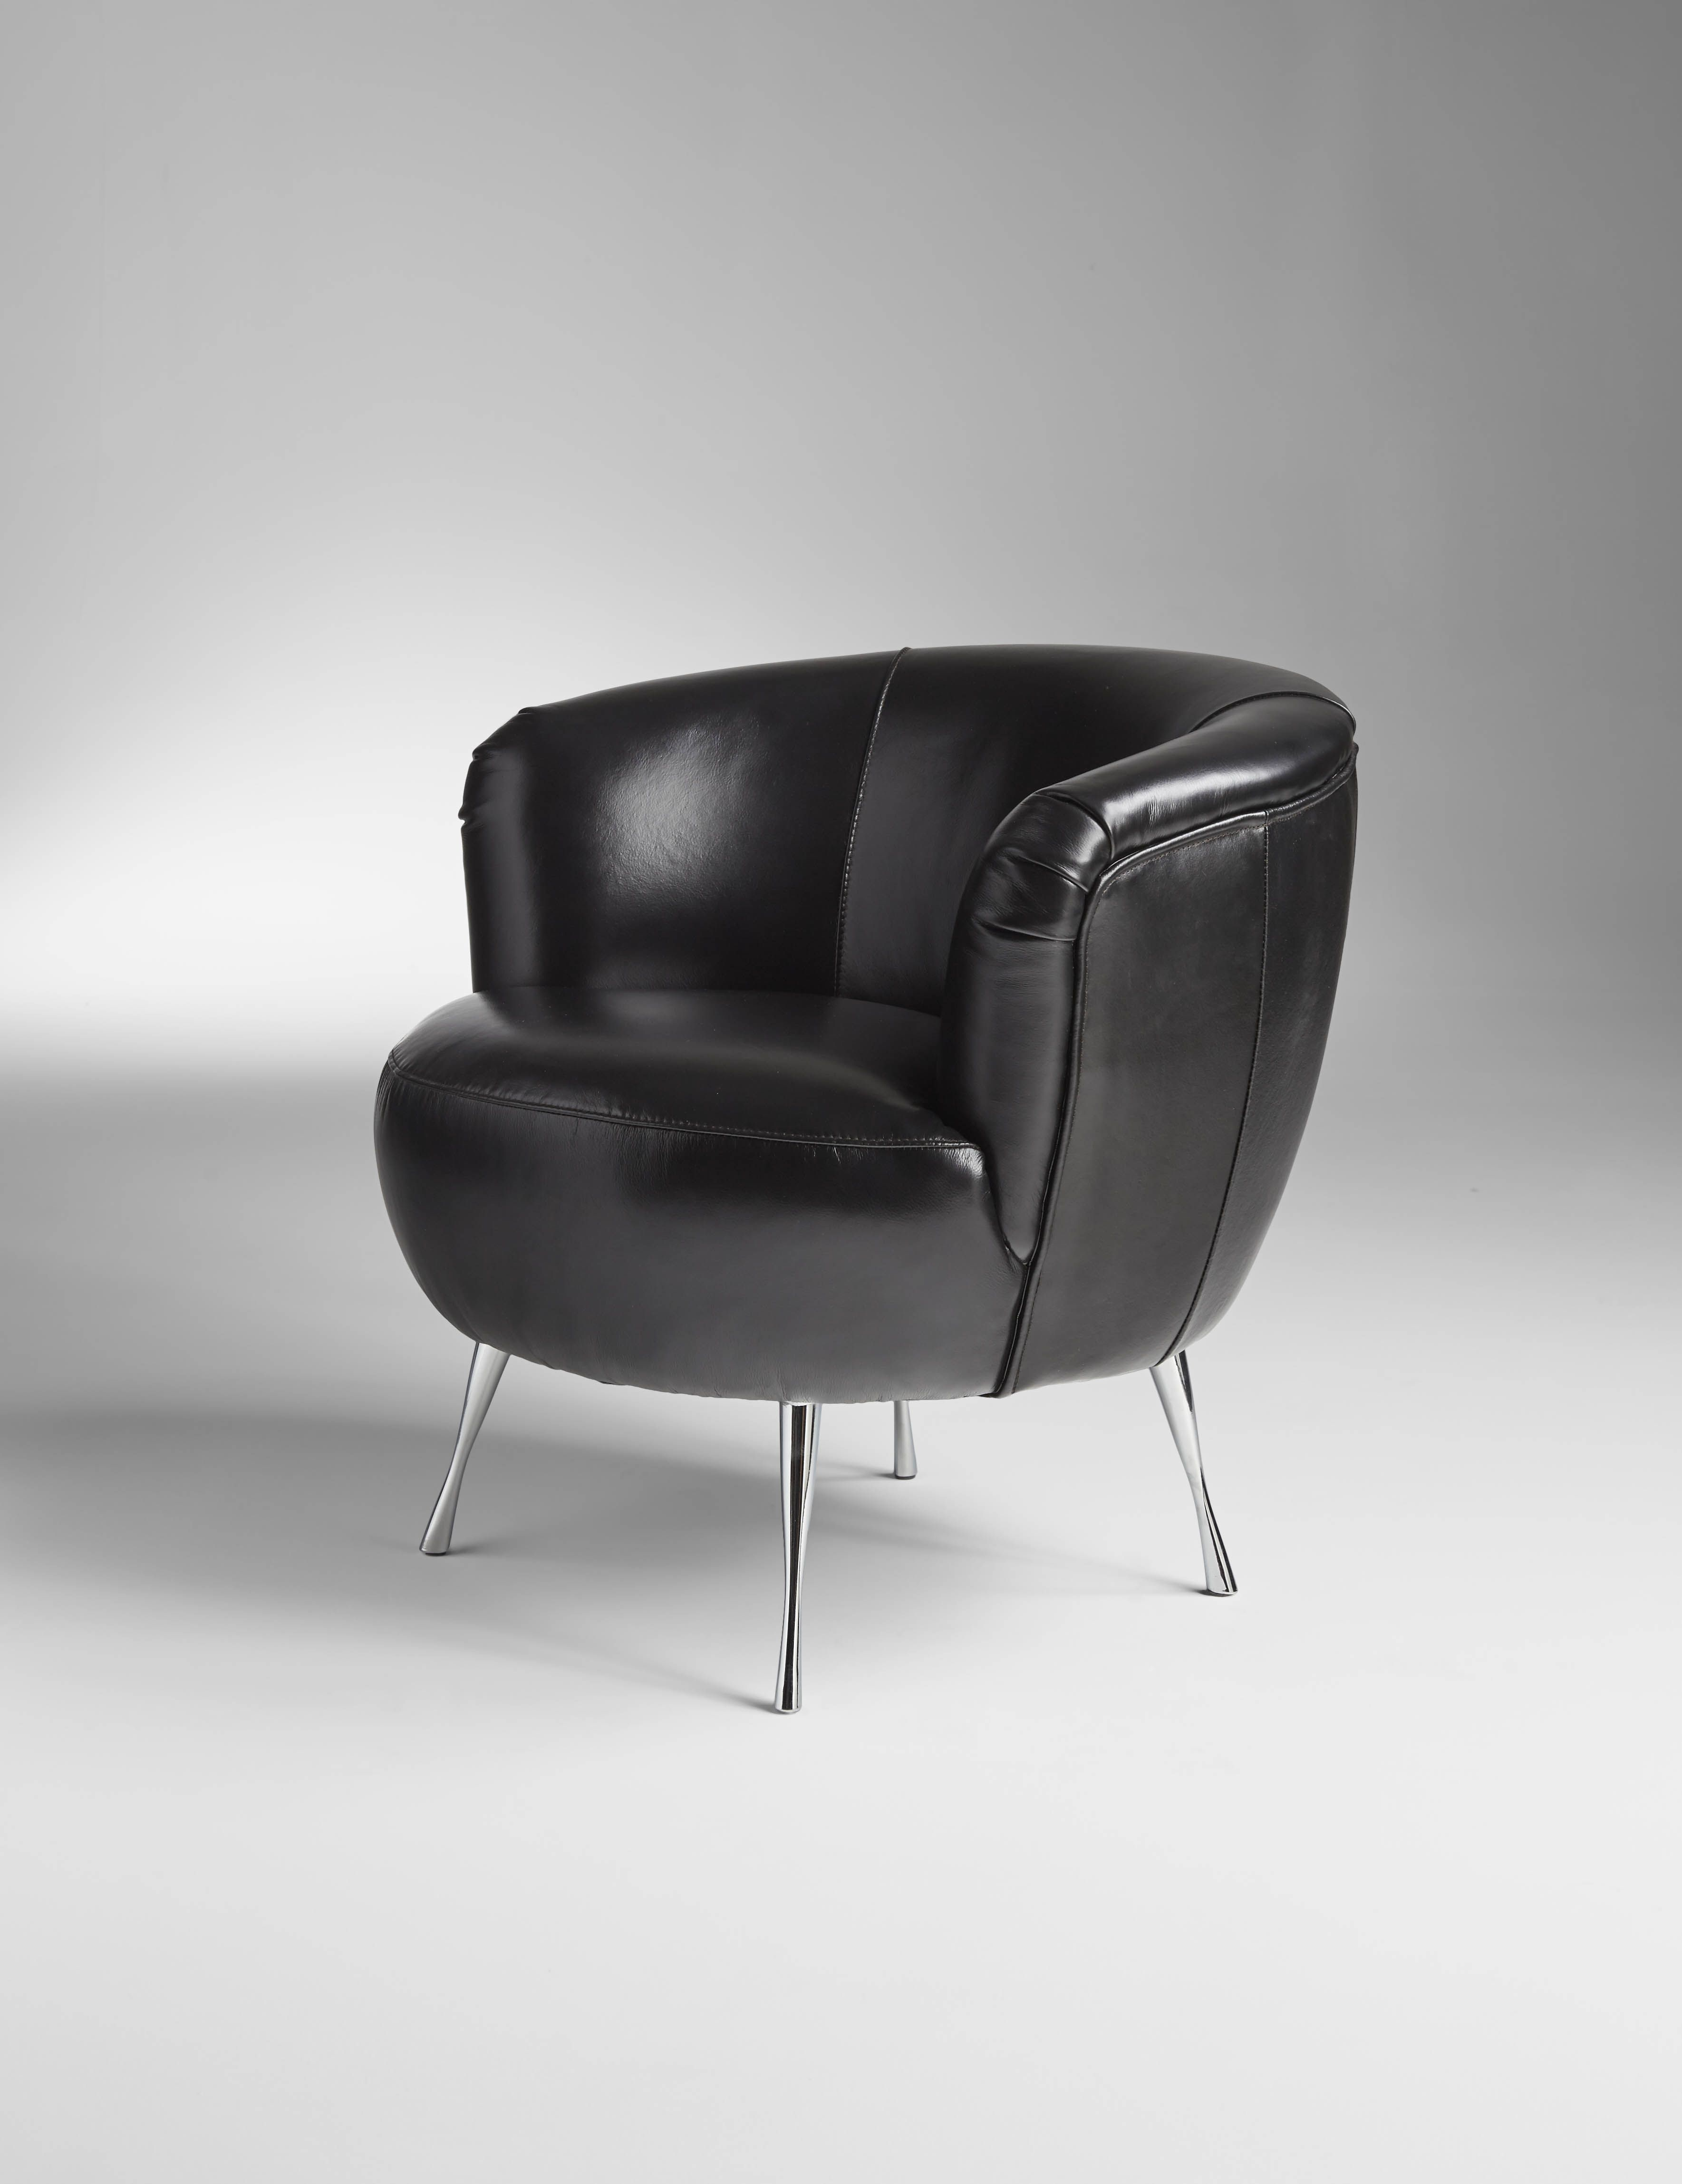 The Modena chair bines a puffy plush seat of Black & Tan or